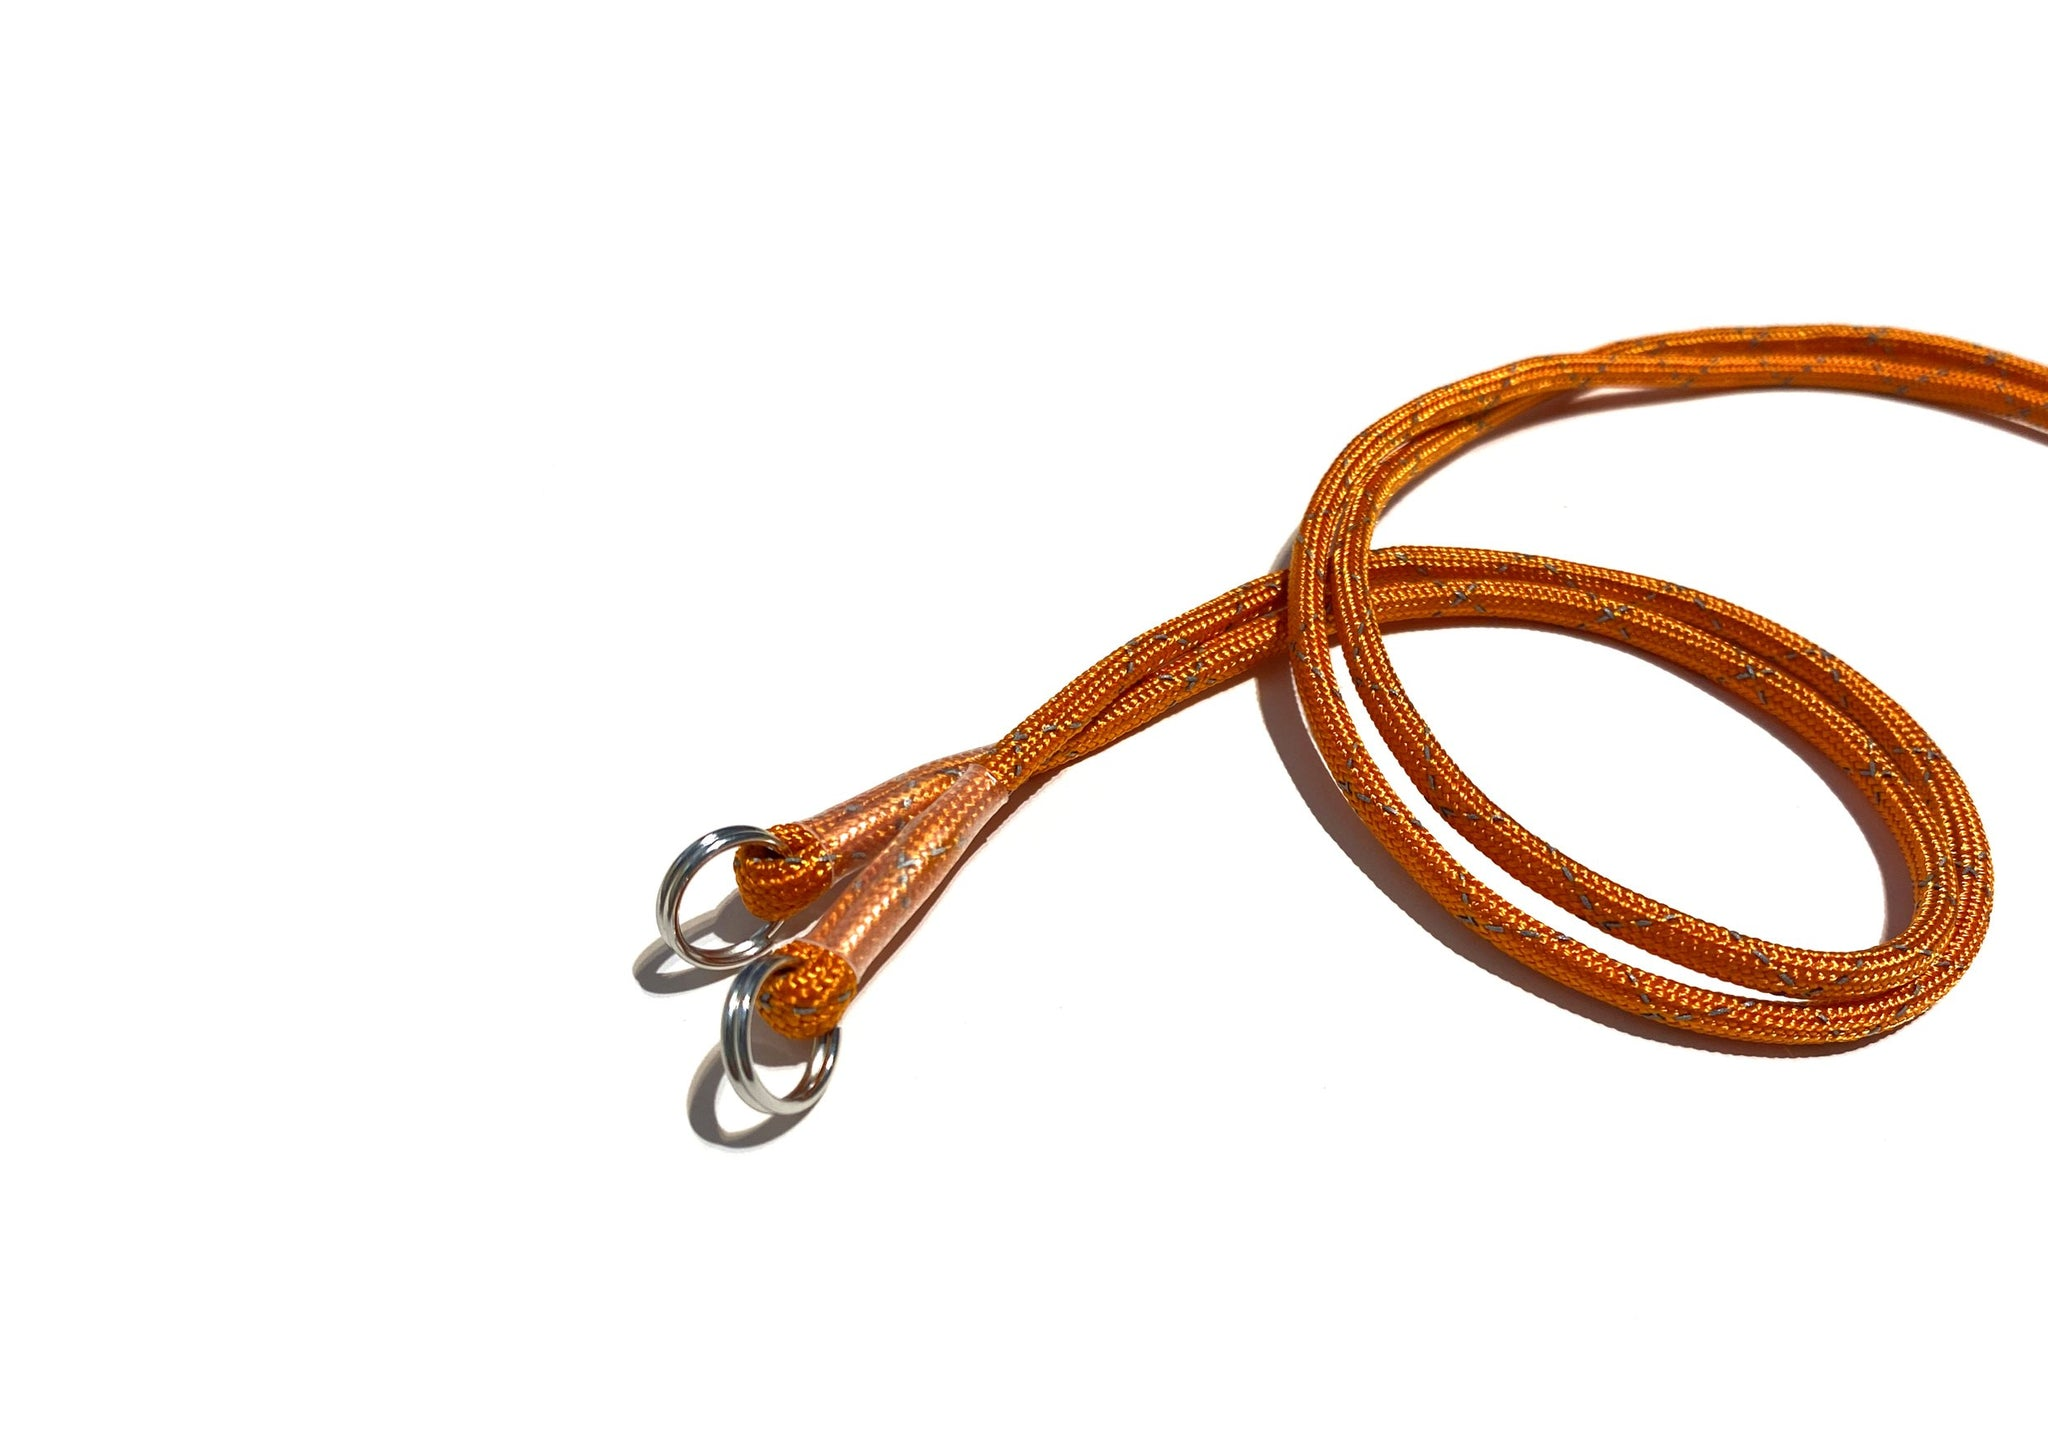 The Quantum Alwayth x Pake®¸ w/ Utility Strap Orange